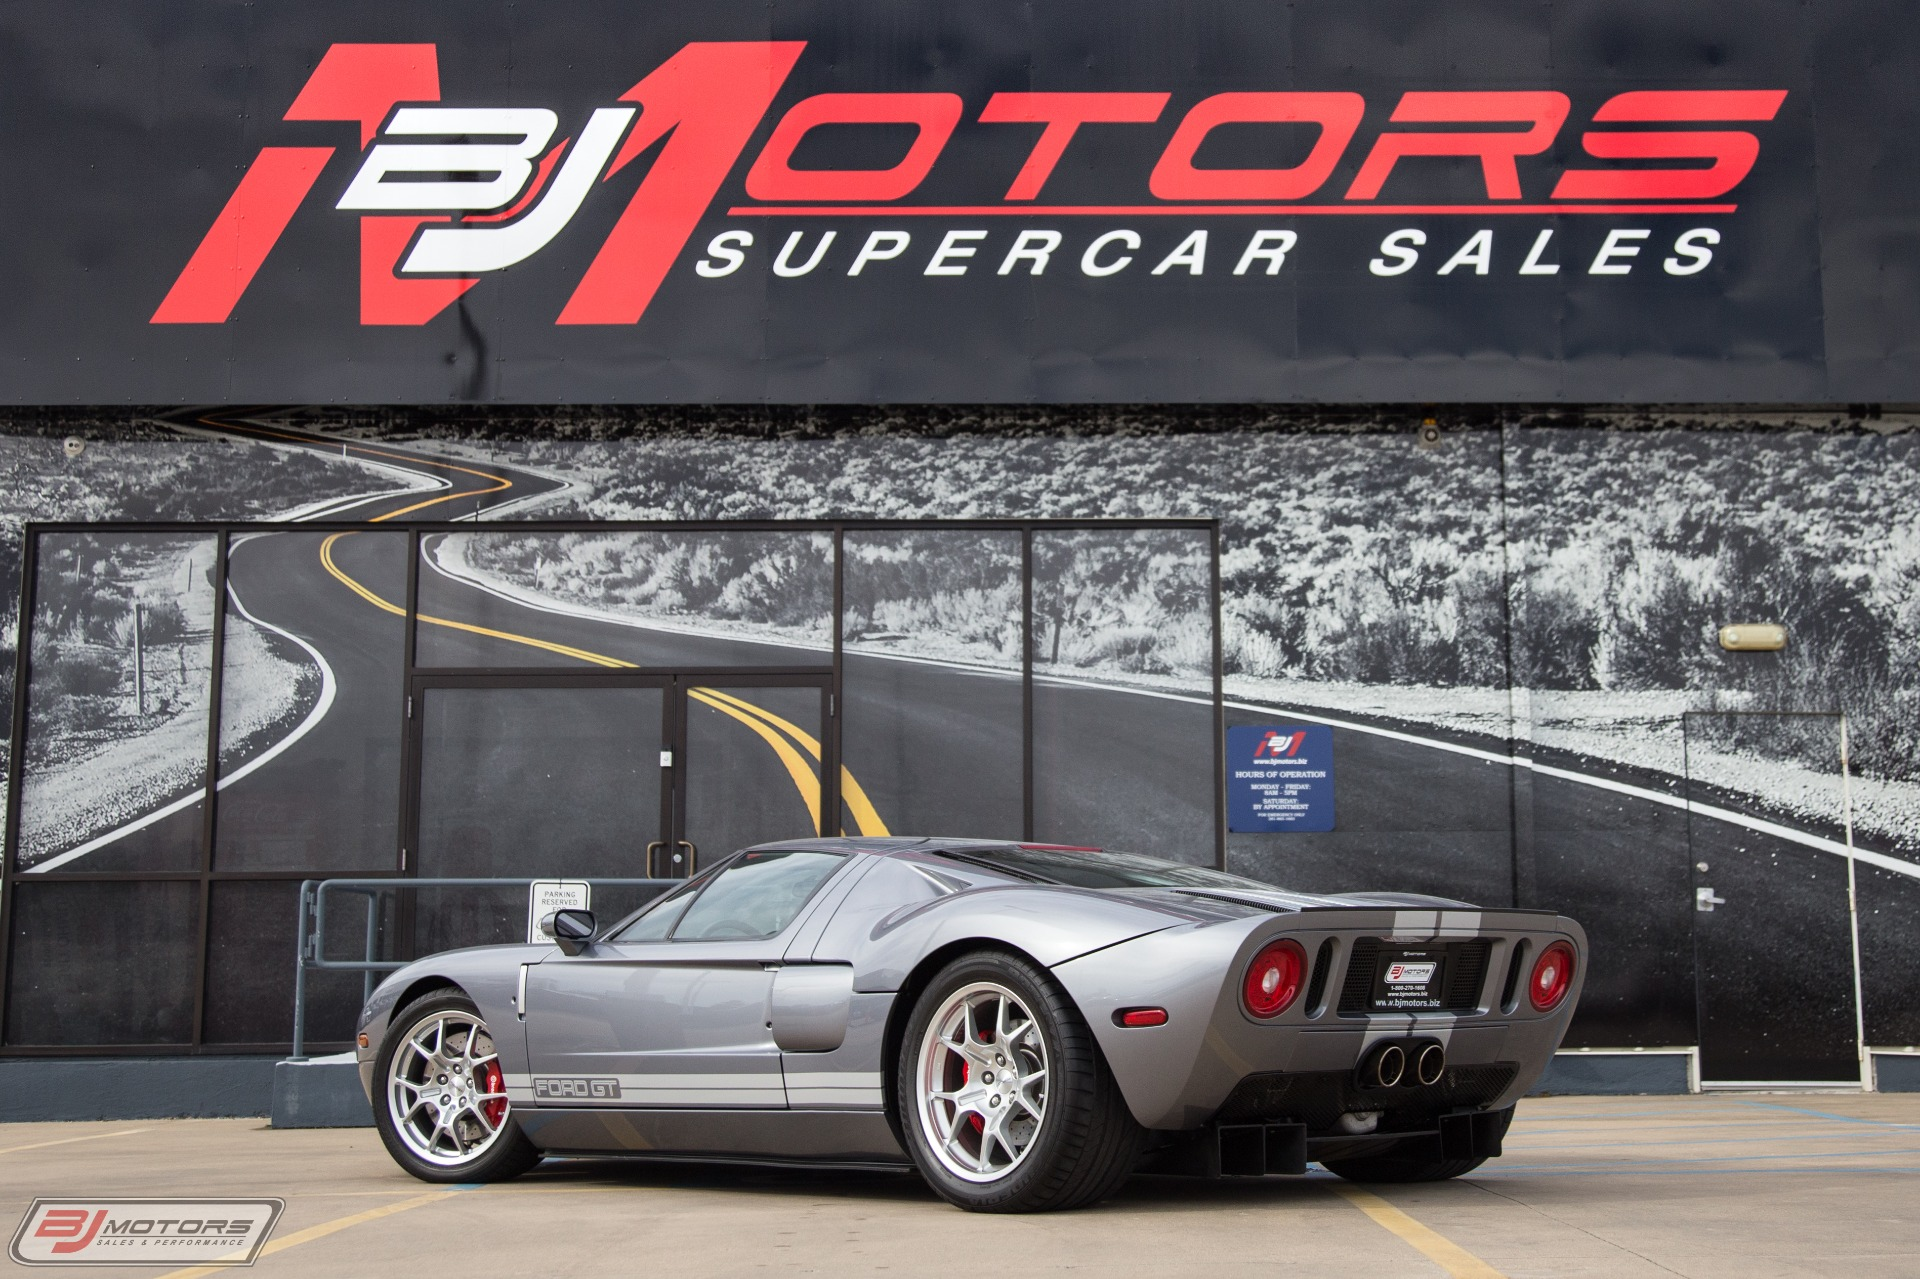 Used-2006-Ford-GT-in-Tungsten-with-Silver-Stripes-Red-Calipers-3-Option-Ford-GT